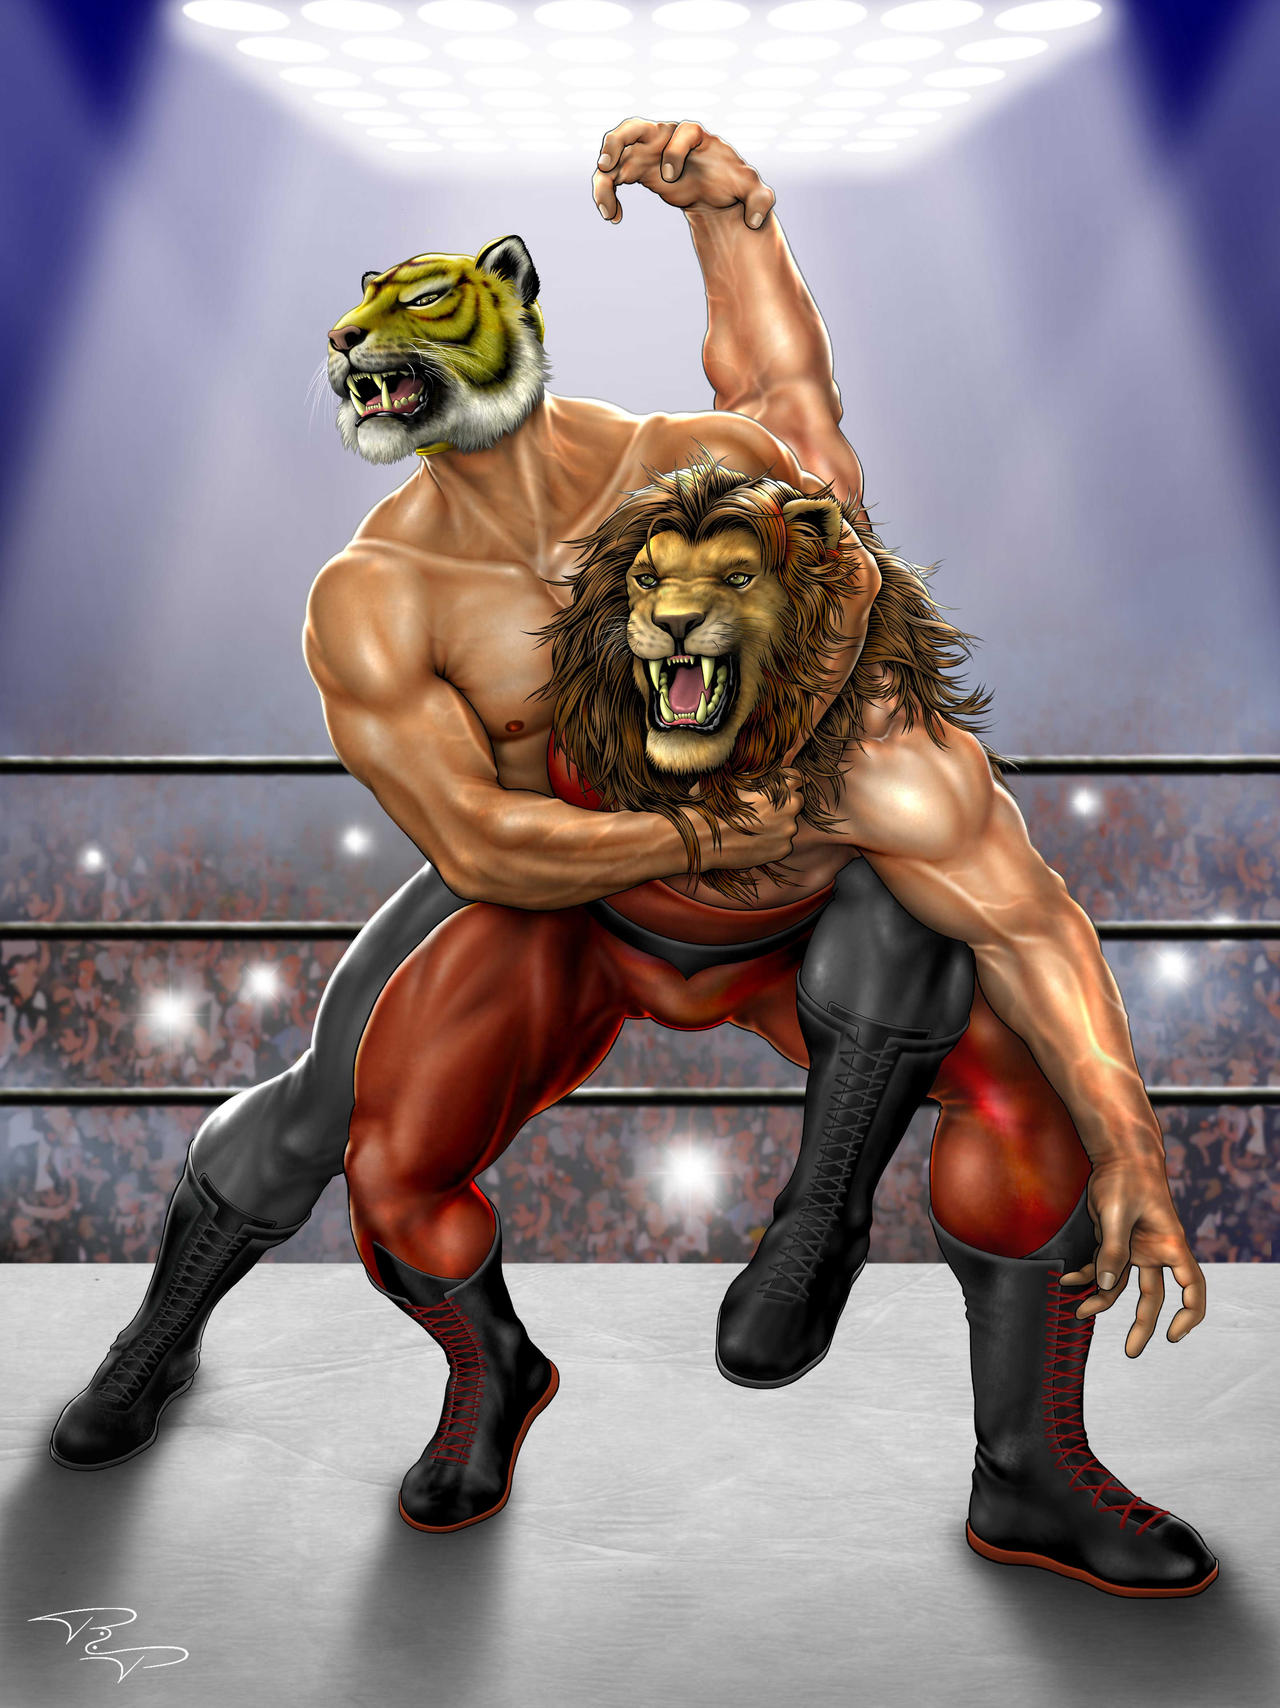 images library for tiger mask  Tiger_Mask_VS_Lion_Man_by_Richeart